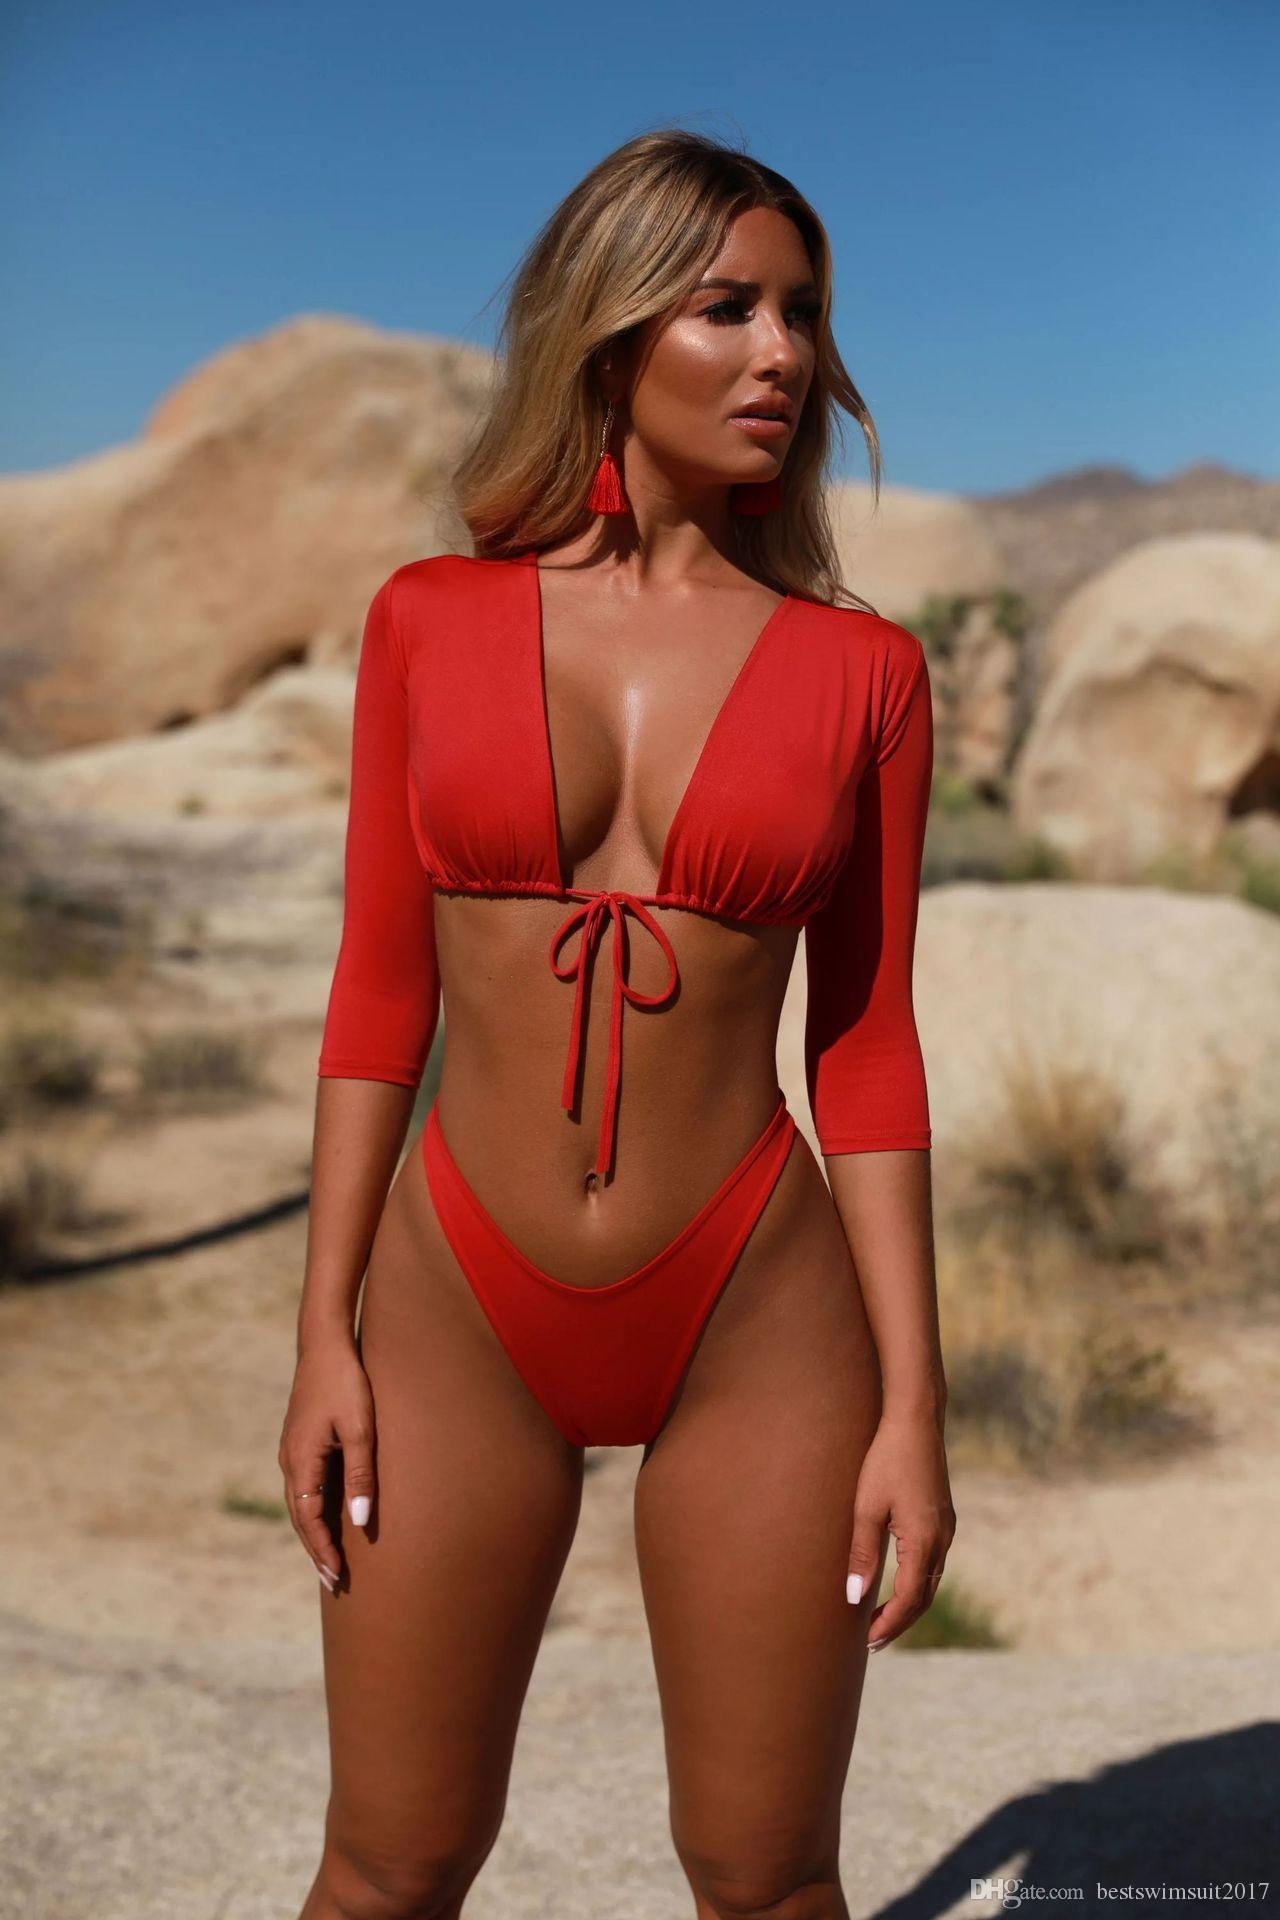 76d6d0069538c Hot Sale Swimwear for Women Bikini Set 2019 Sexy Long Sleeve Bikinis  Swimsuit Woman Beach Biquini Summer High Cut Swim Wear Bathing Suits  Swimwear for Women ...